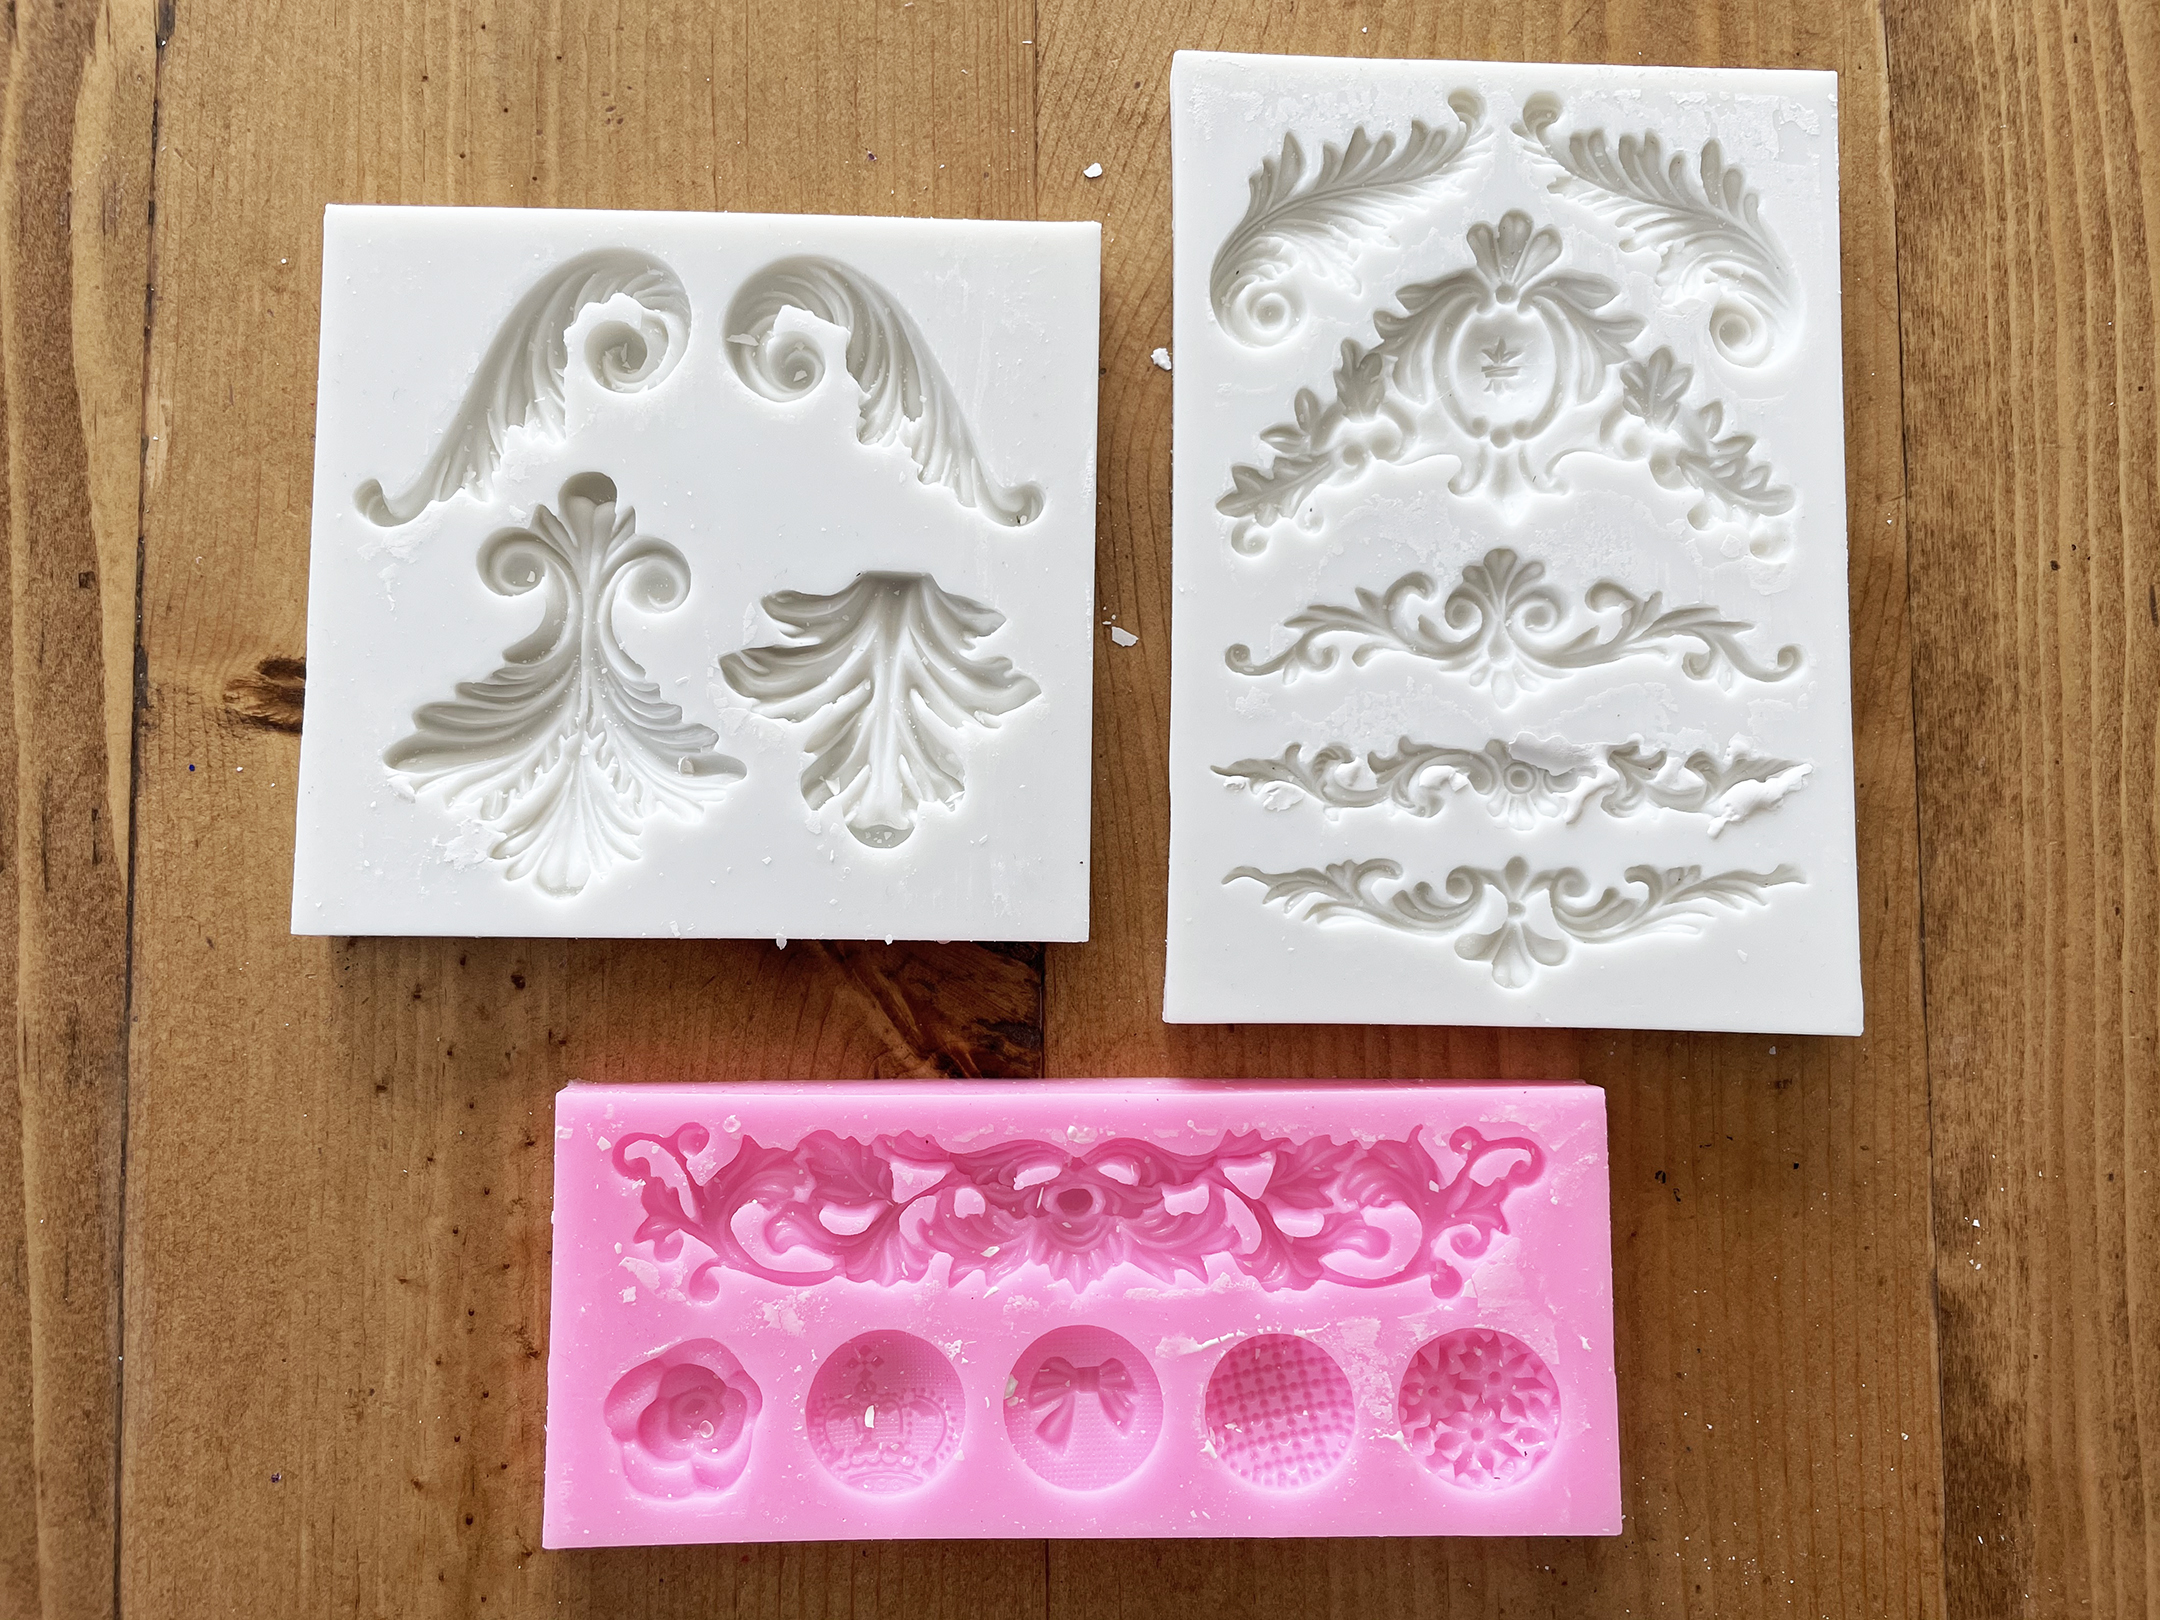 Boroughfare Home Vintage Lavender Sets with Silicone Molds